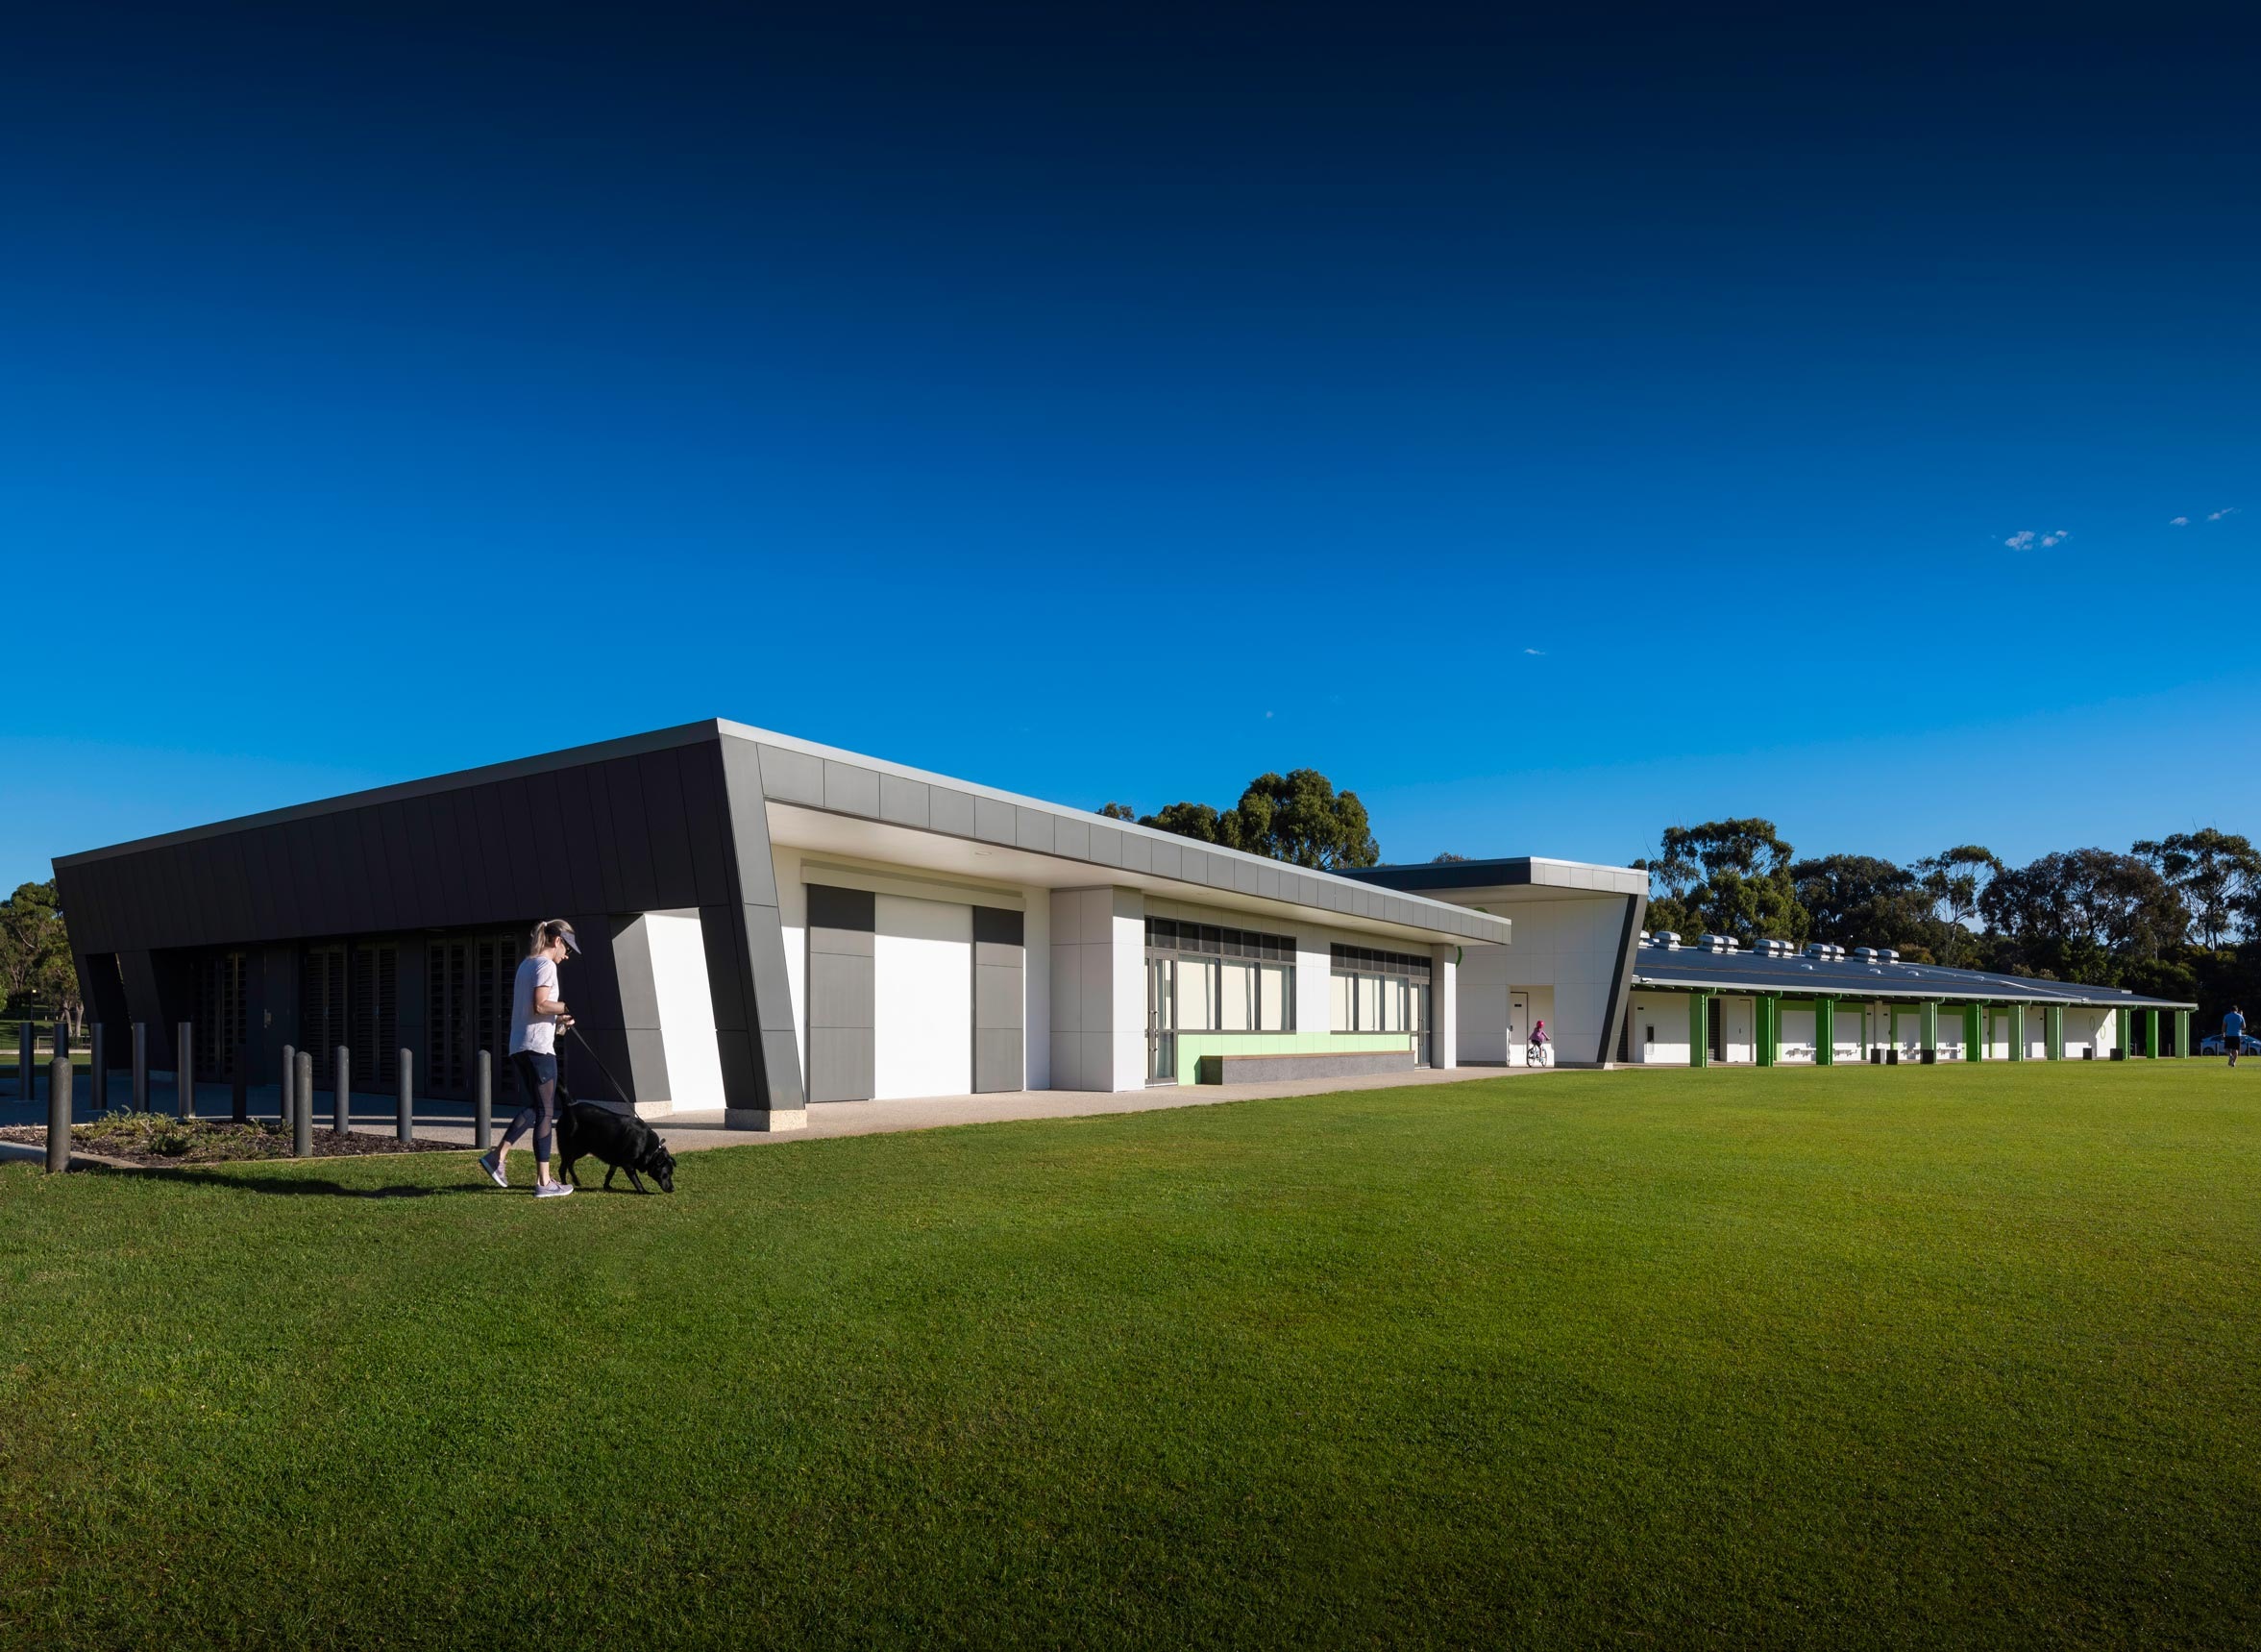 Carine Hall Recreation Centre with dark grey angled walls and sporting fields in front